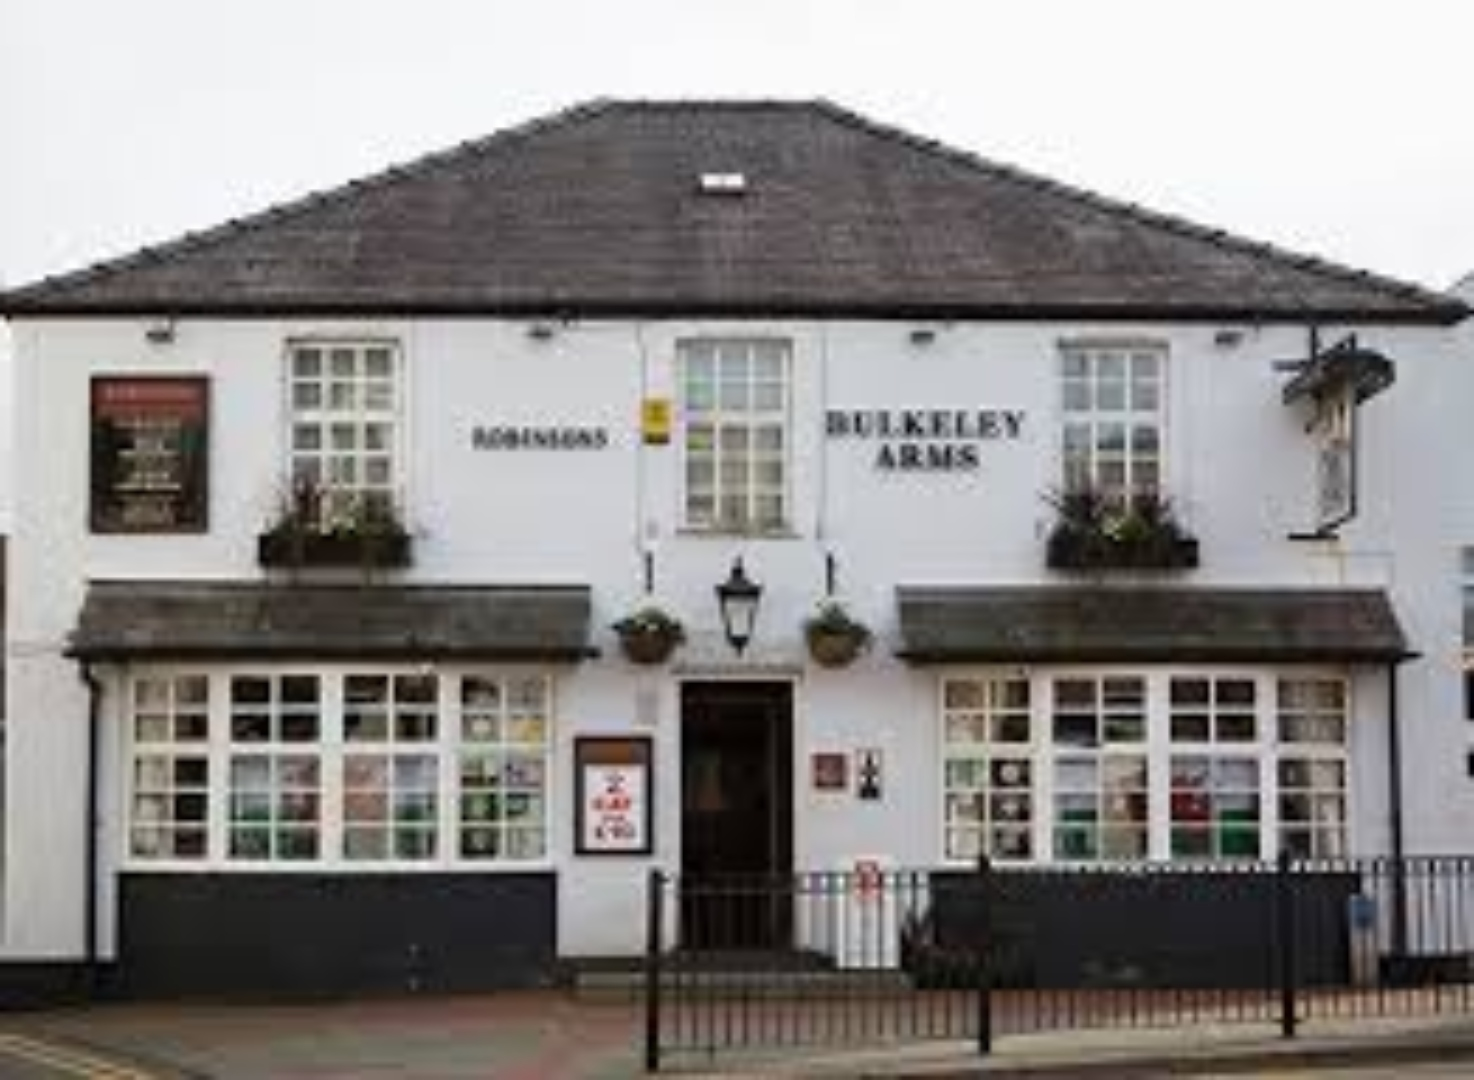 A large house at Bulkeley Arms.